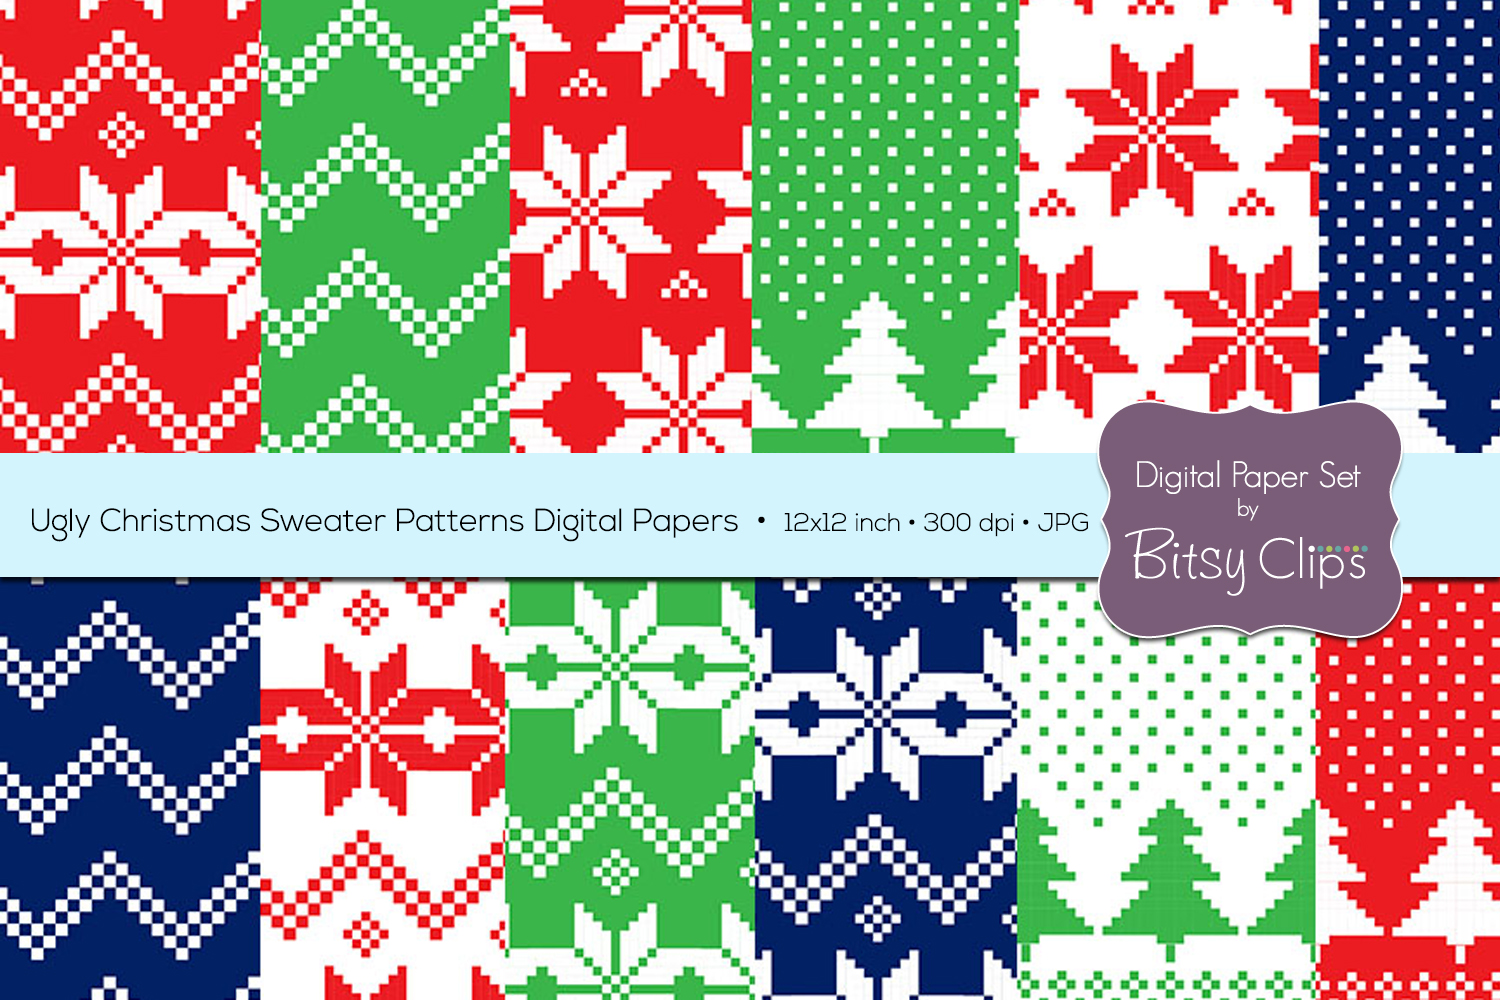 Ugly Christmas Sweaters Patterns.Ugly Christmas Sweater Patterns Digital Paper Set Commercial Use Christmas Scrapbook Paper Background Pattern